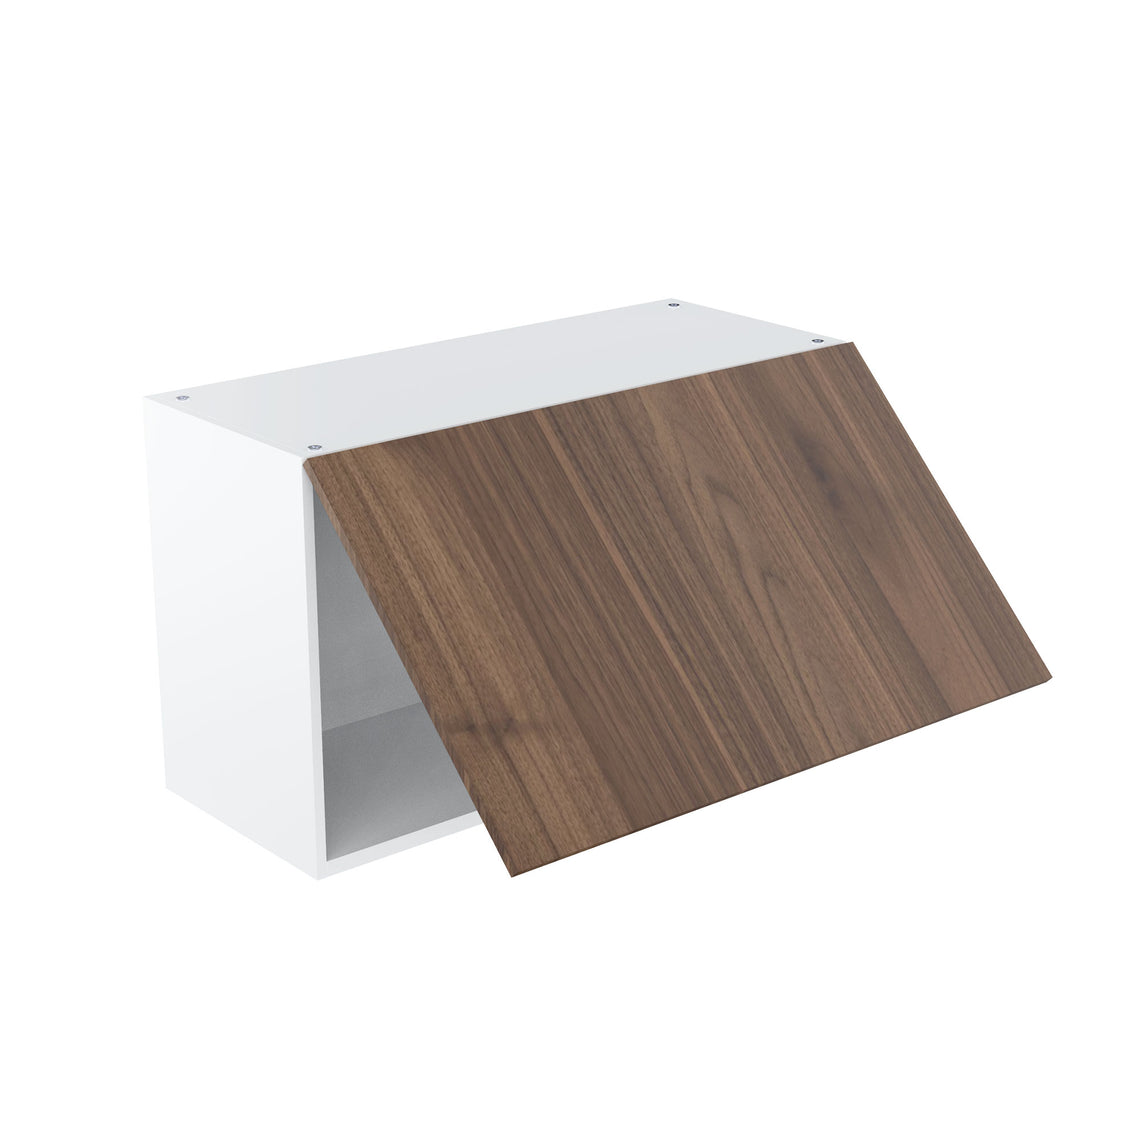 Walnut Wall Single Lift Cabinet - 30